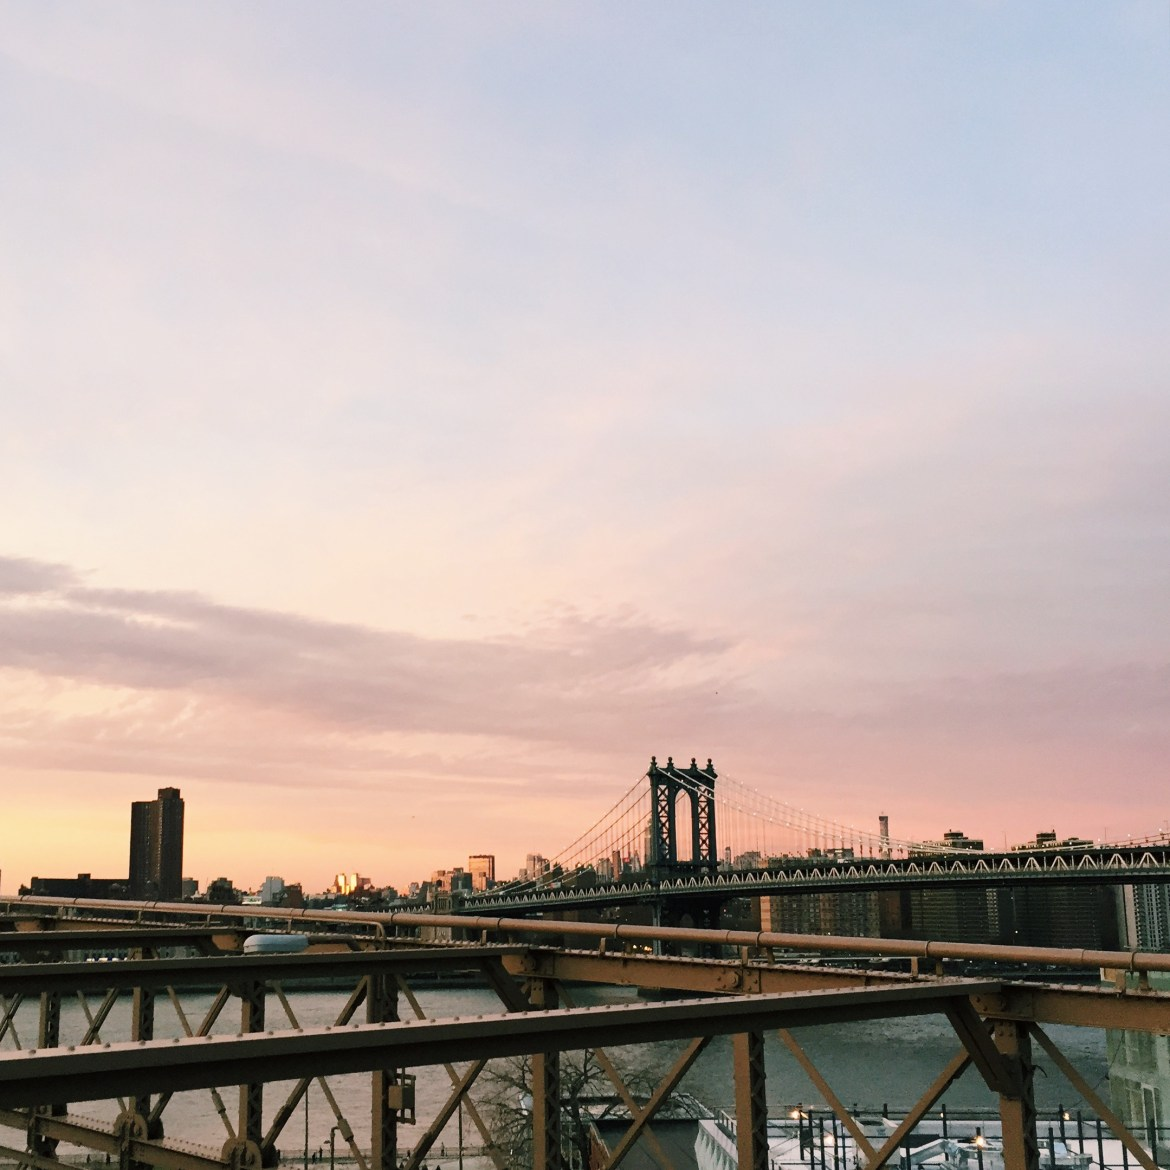 Sunset over Brooklyn Bridge. The highlight of my holiday...